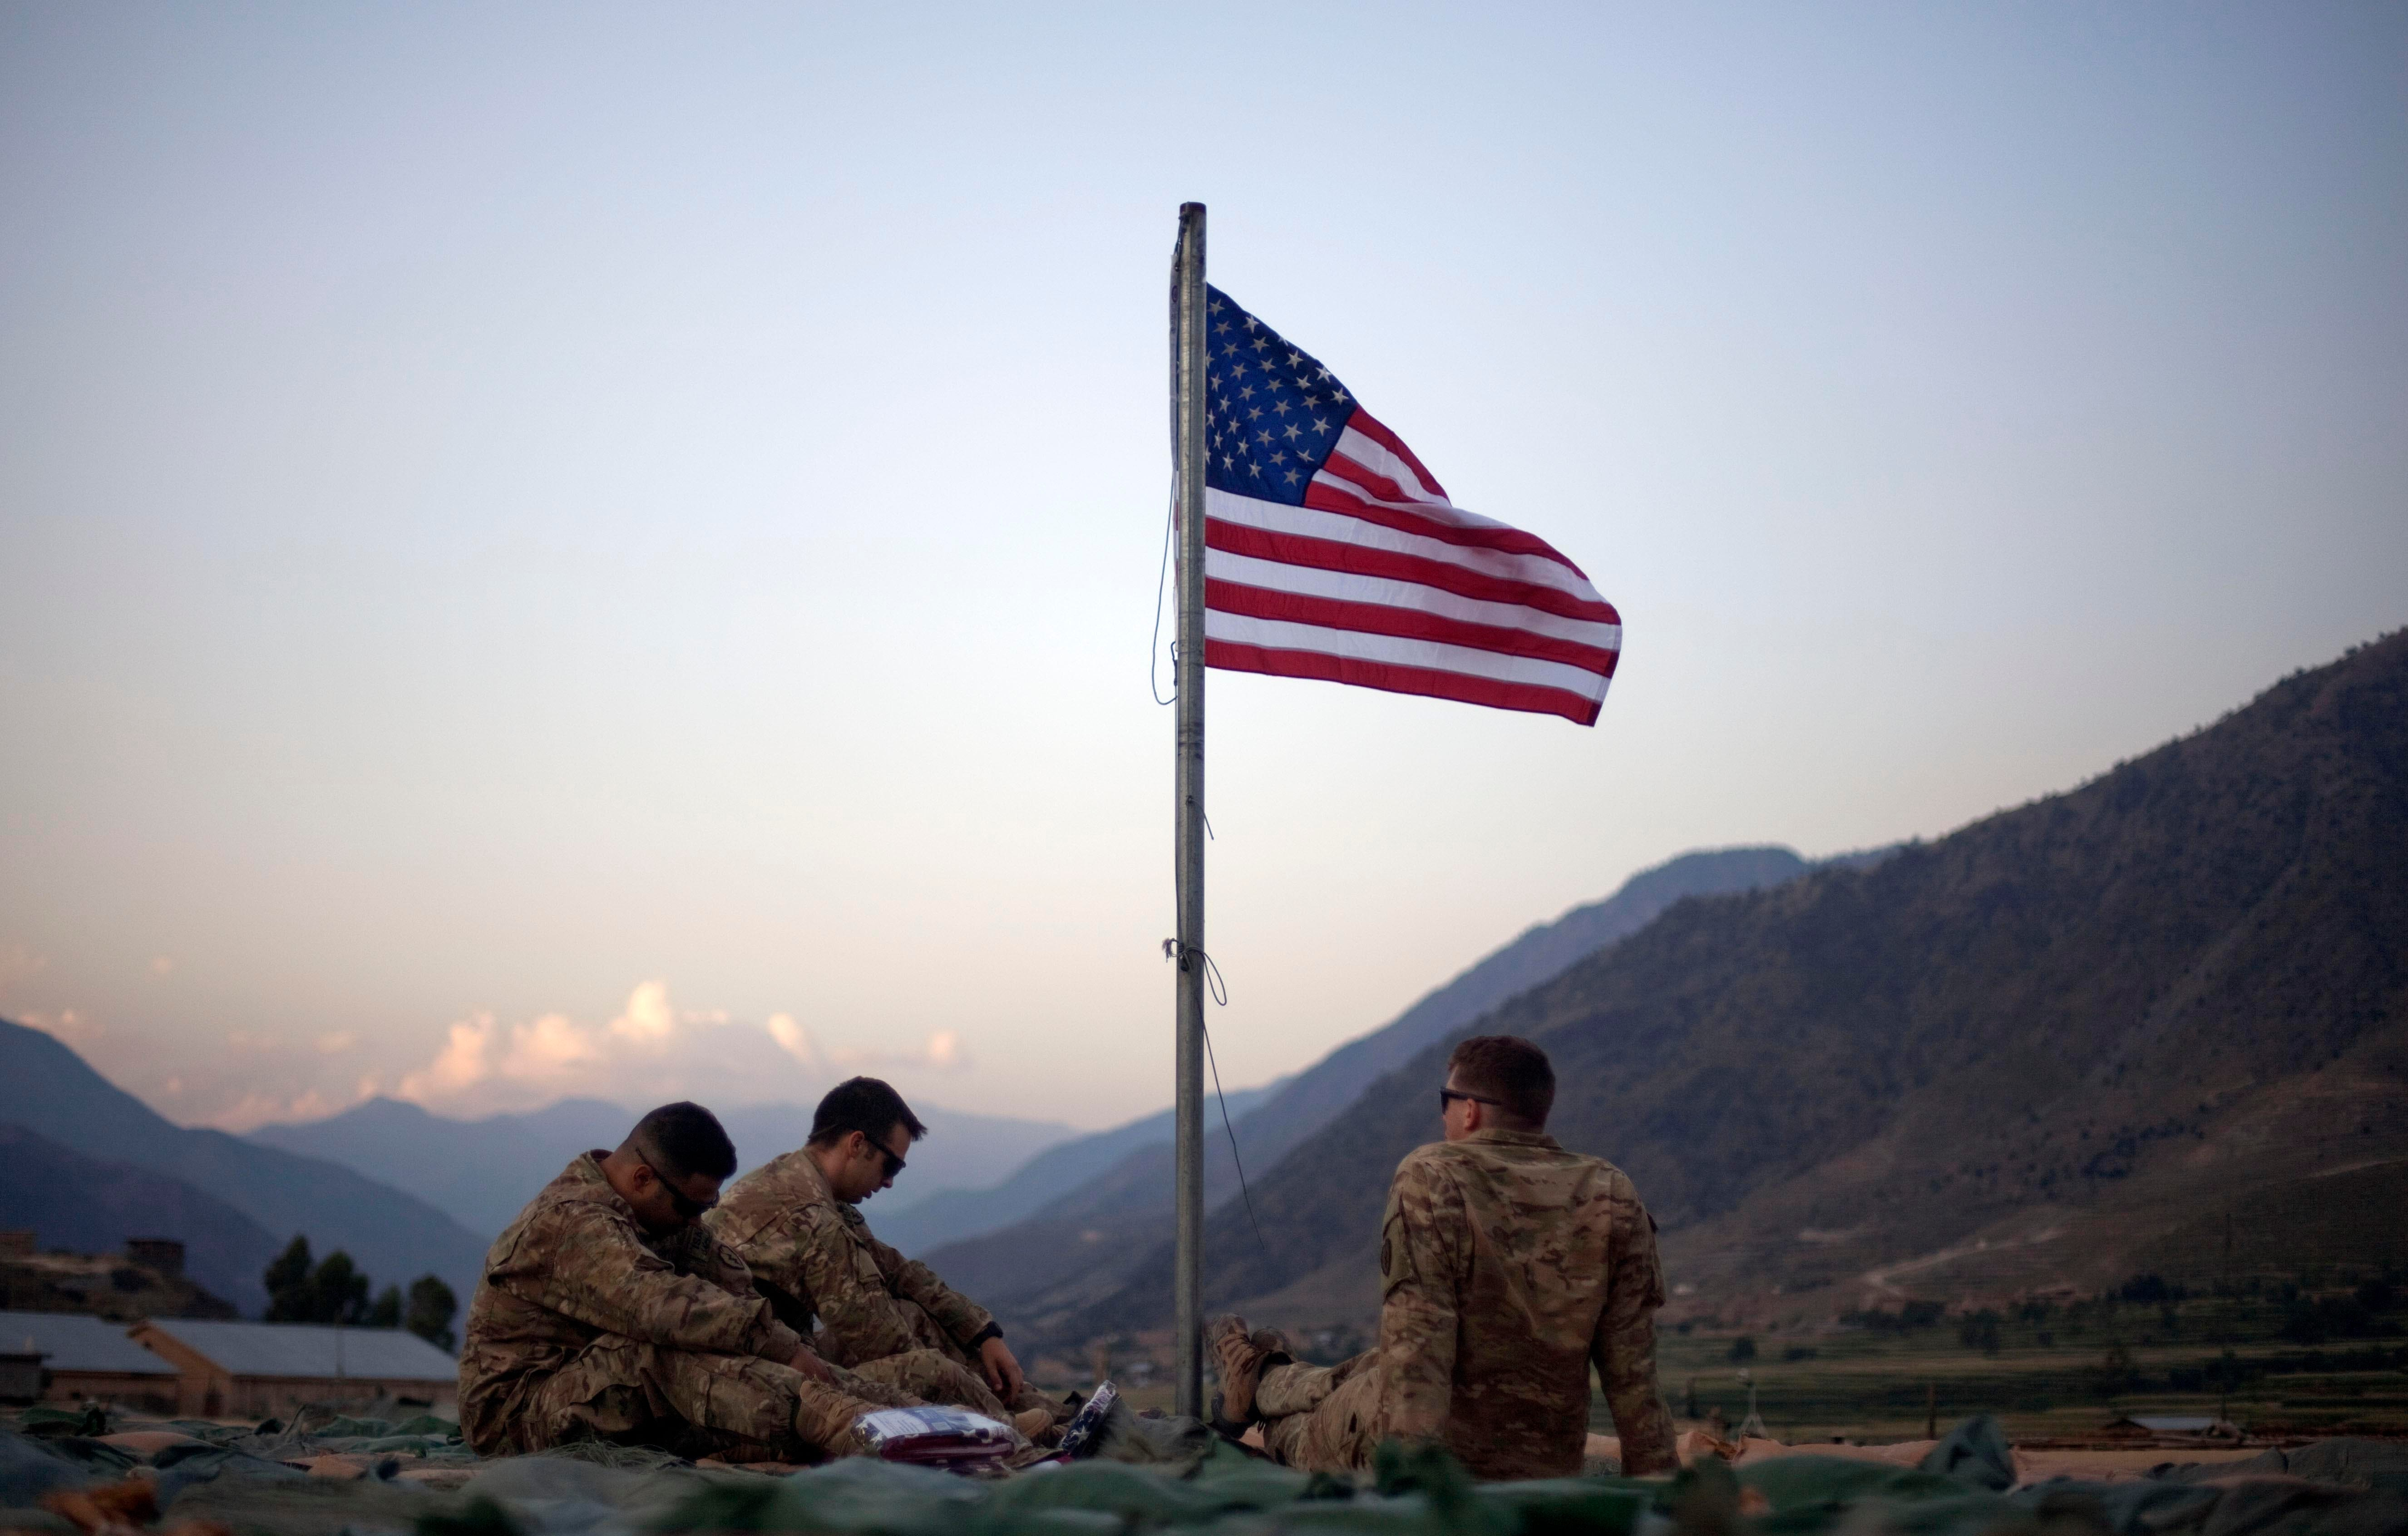 U.S. soldiers sit beneath an American flag just raised to commemorate the tenth anniversary of the 9/11 attacks at Forward Operating Base Bostick in Kunar province, Afghanistan, in 2011. Ten years later, U.S. troops are still in the country.